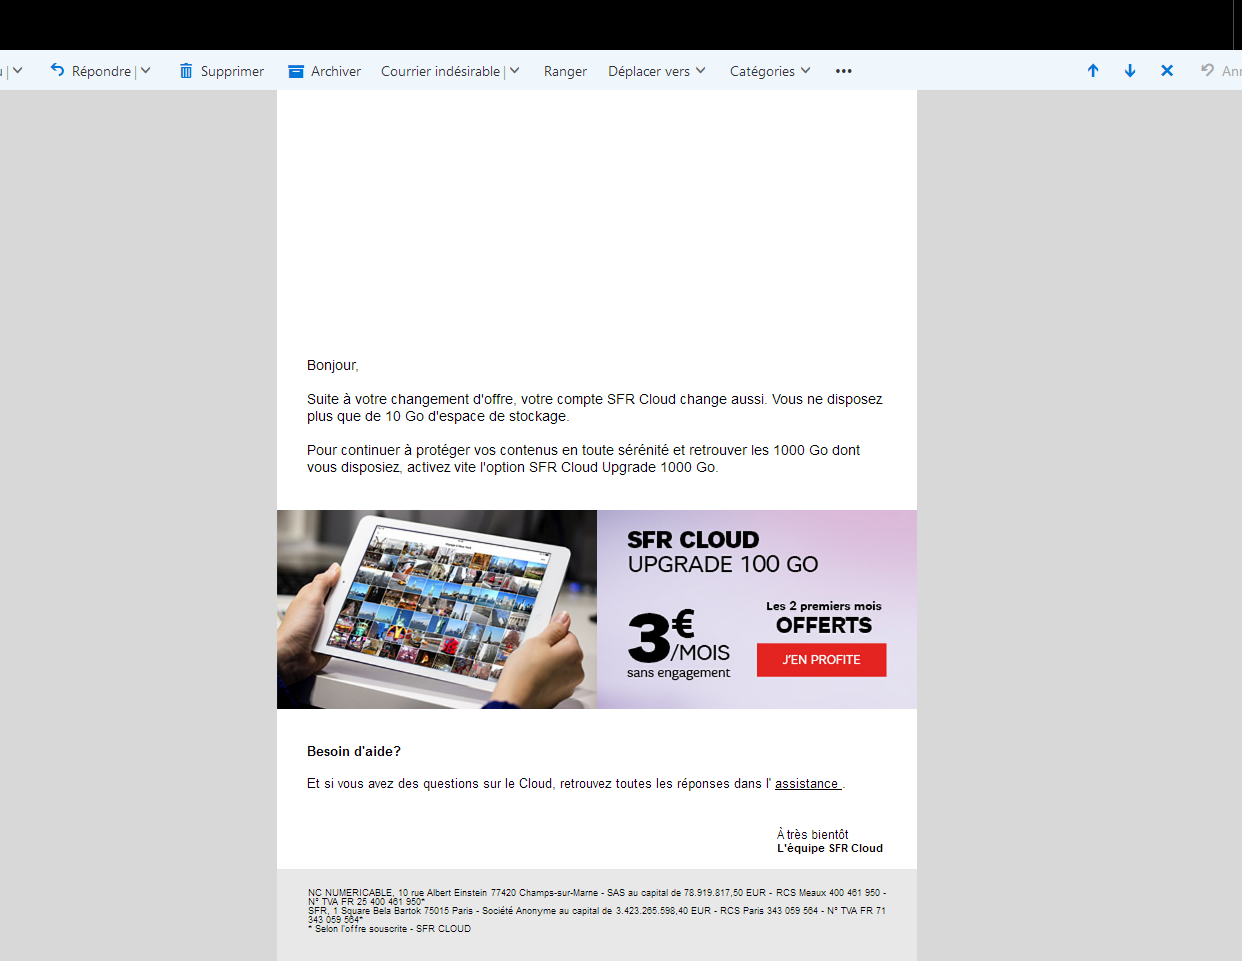 Screenshot-2018-3-31 Courrier - poncetrenaud hotmail fr.png